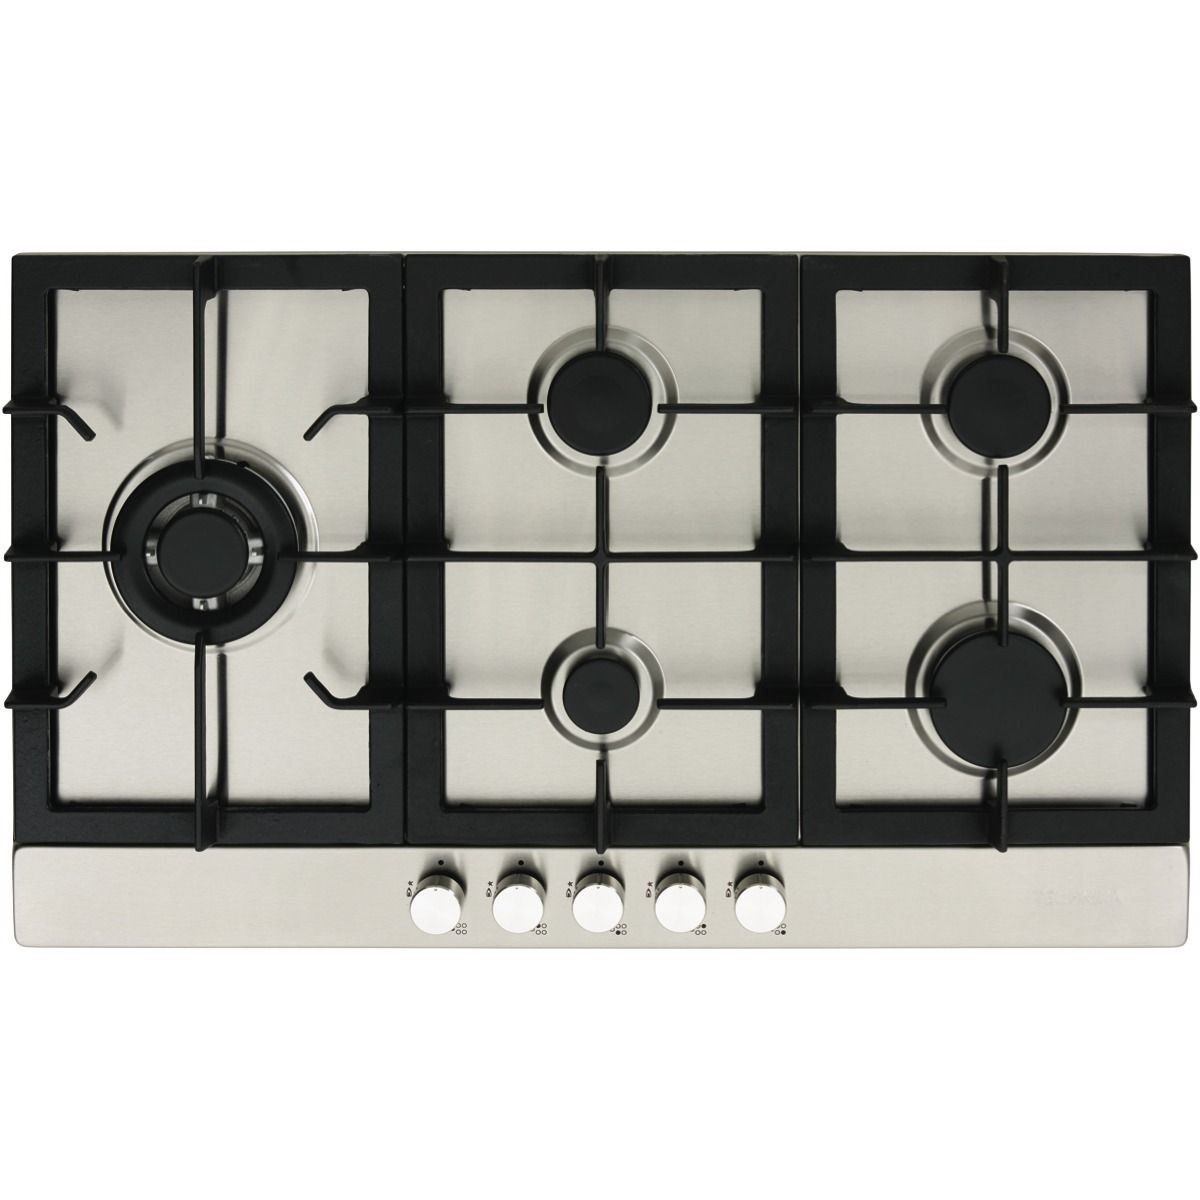 TGC9GLWSS Technika 90cm Gas Cooktop $599 | renovations | Pinterest